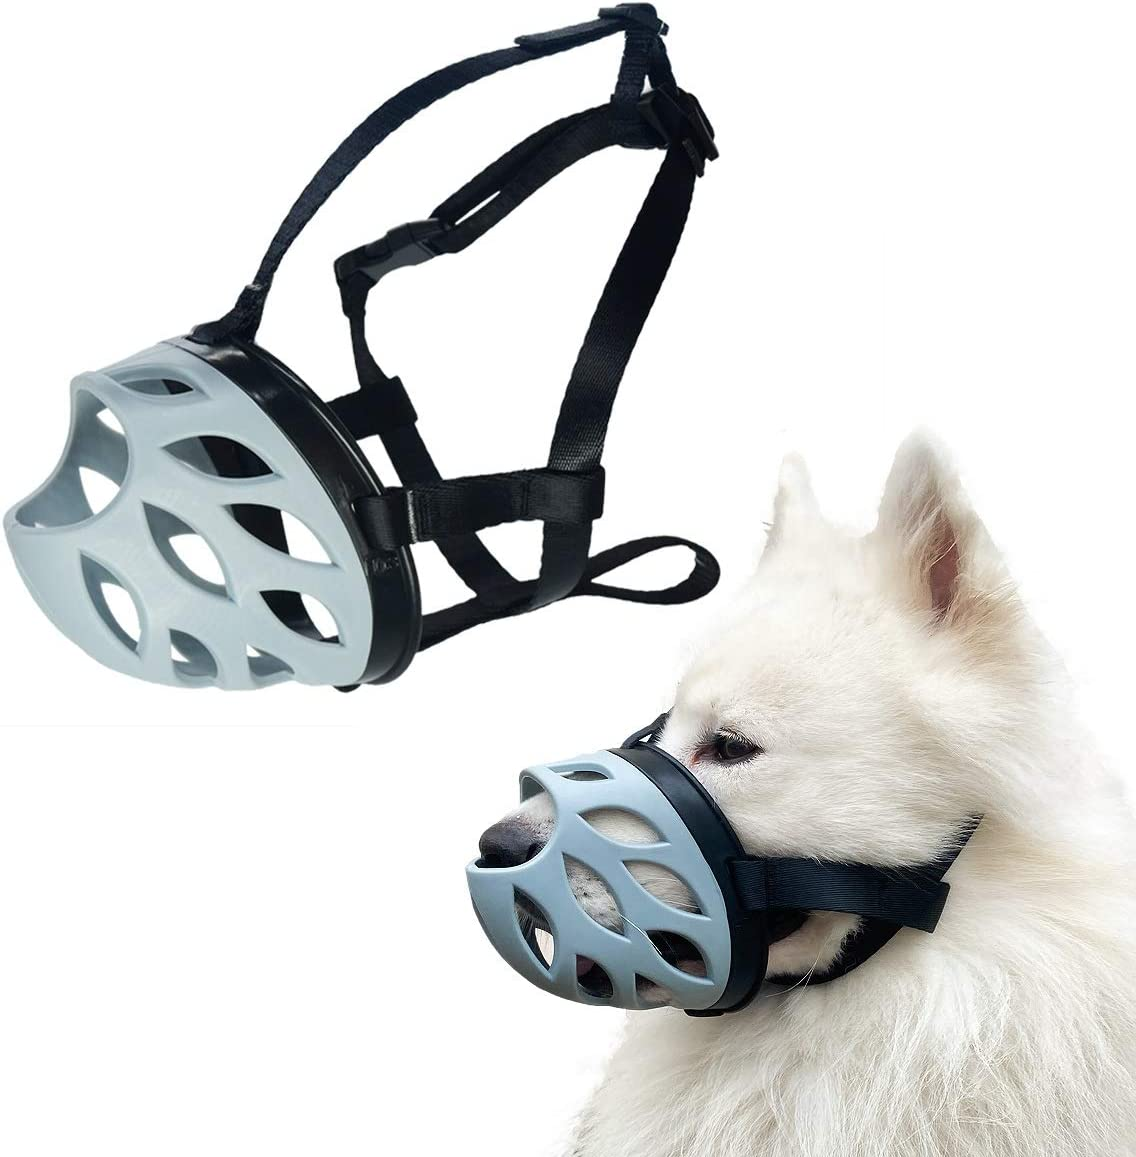 Dog Muzzle to Prevent Barking, Biting and Chewing, Soft Rubber Basket Muzzle for Small, Medium and Large Dogs